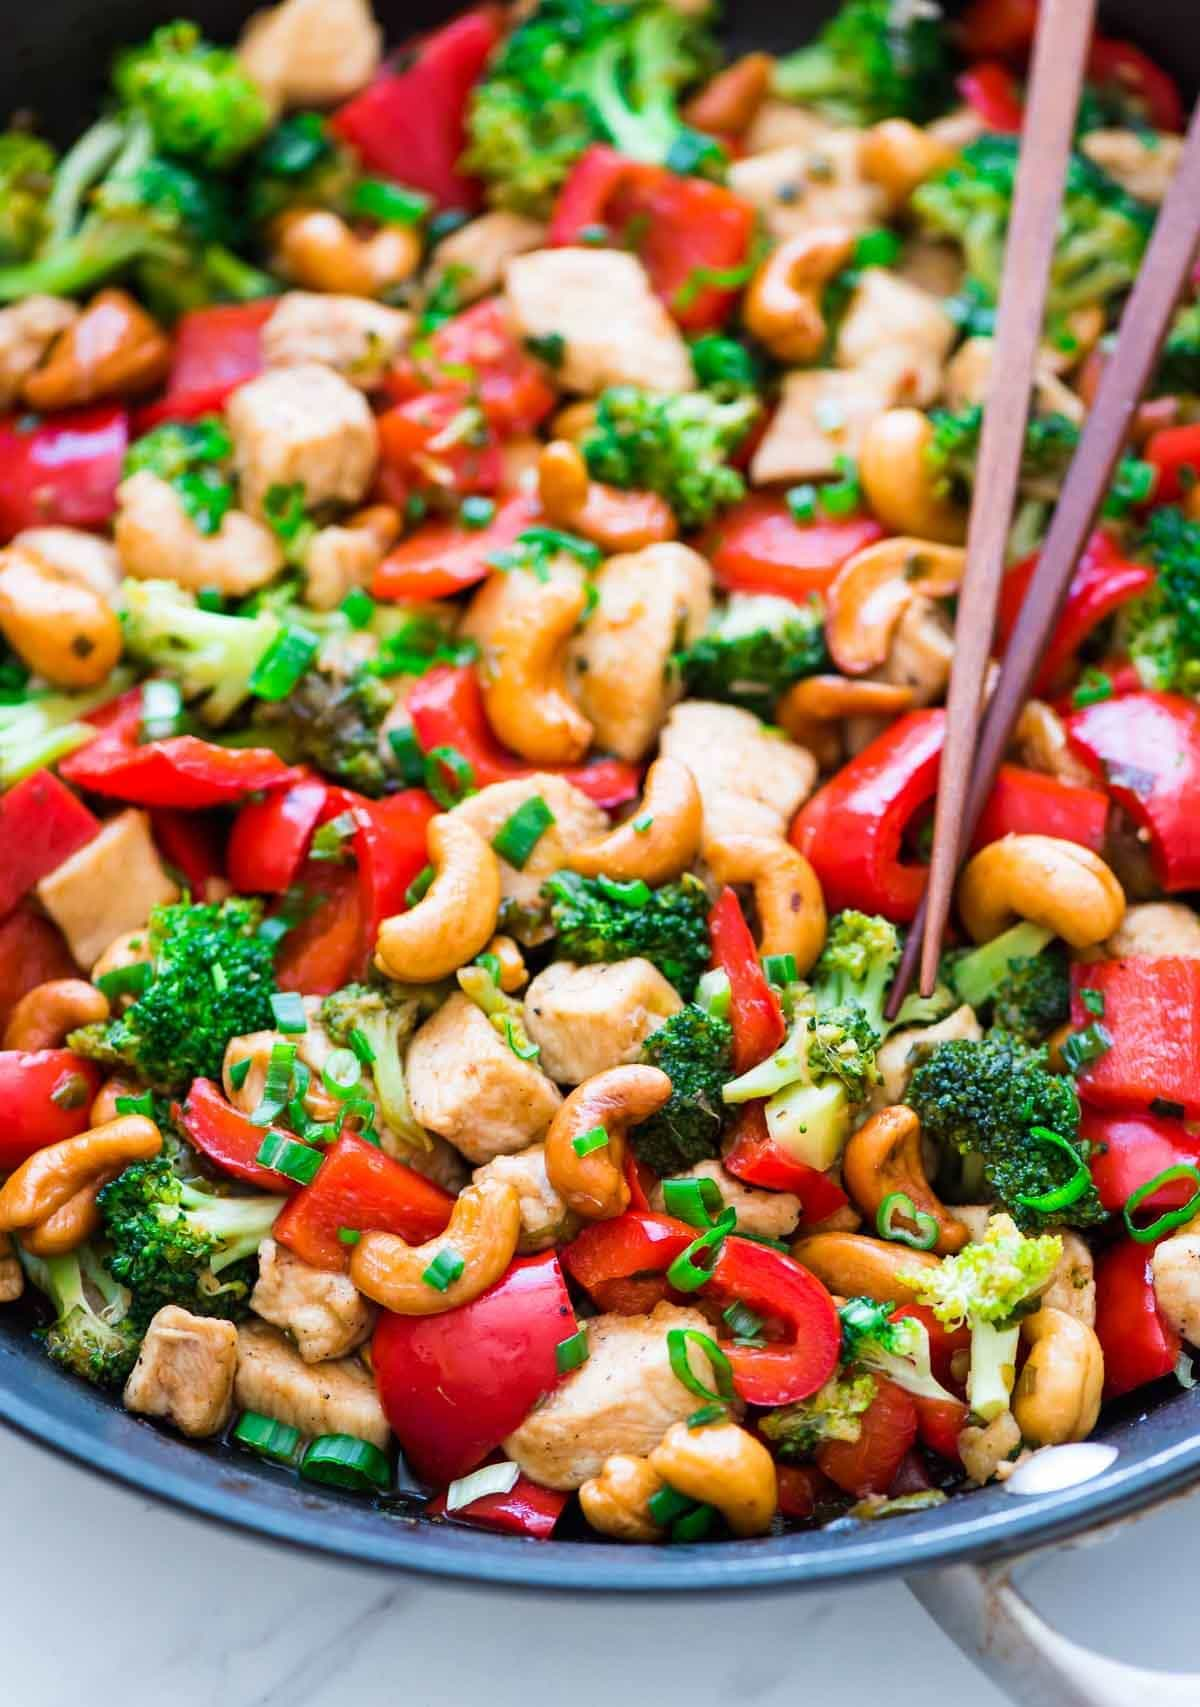 Skinny Honey Thai Cashew Chicken. Ready in 20 minutes! Juicy chicken, crisp veggies, and the best sweet and savory sauce. Easy, healthy recipe perfect for busy weeknights. Recipe at wellplated.com   @wellplated